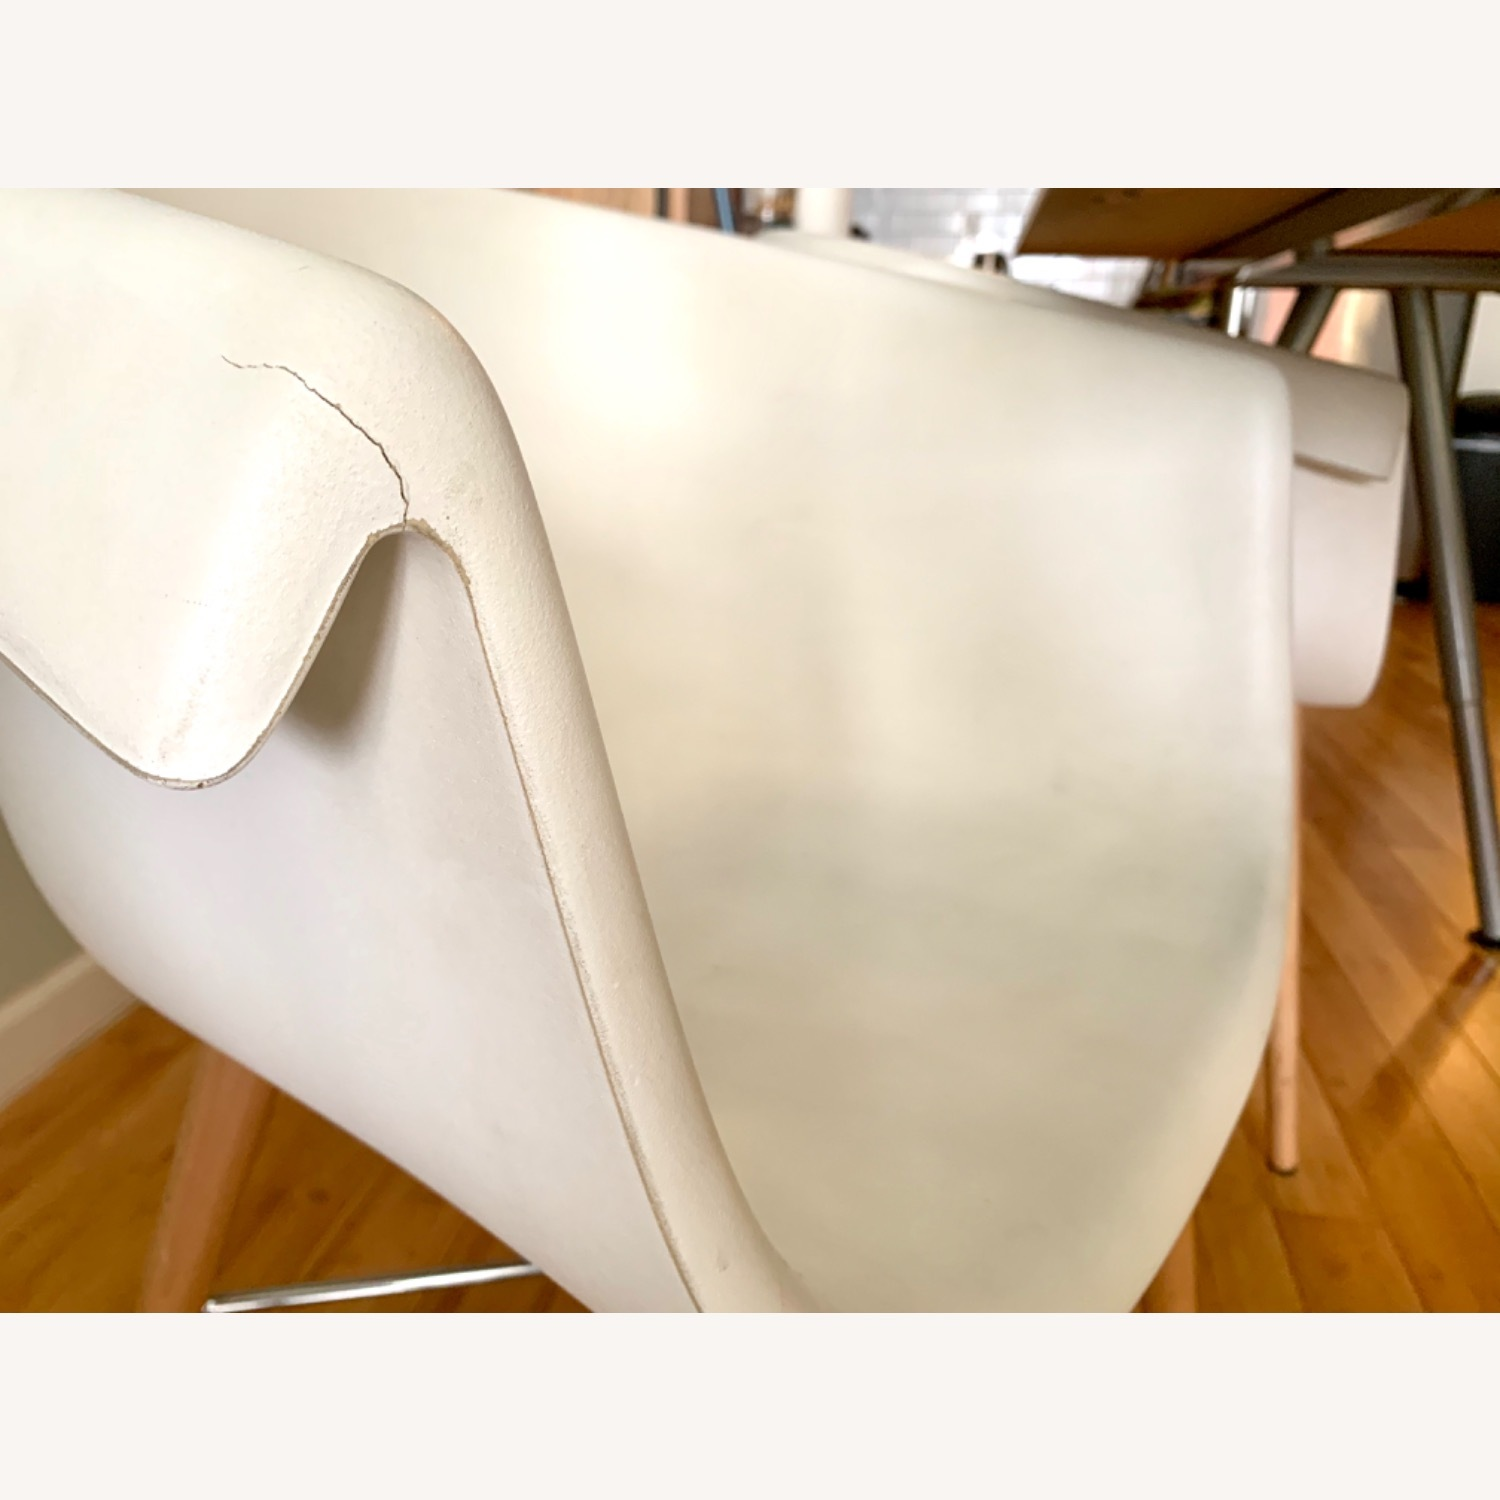 Collier Casprini Dining Chairs by Orlandini - image-4